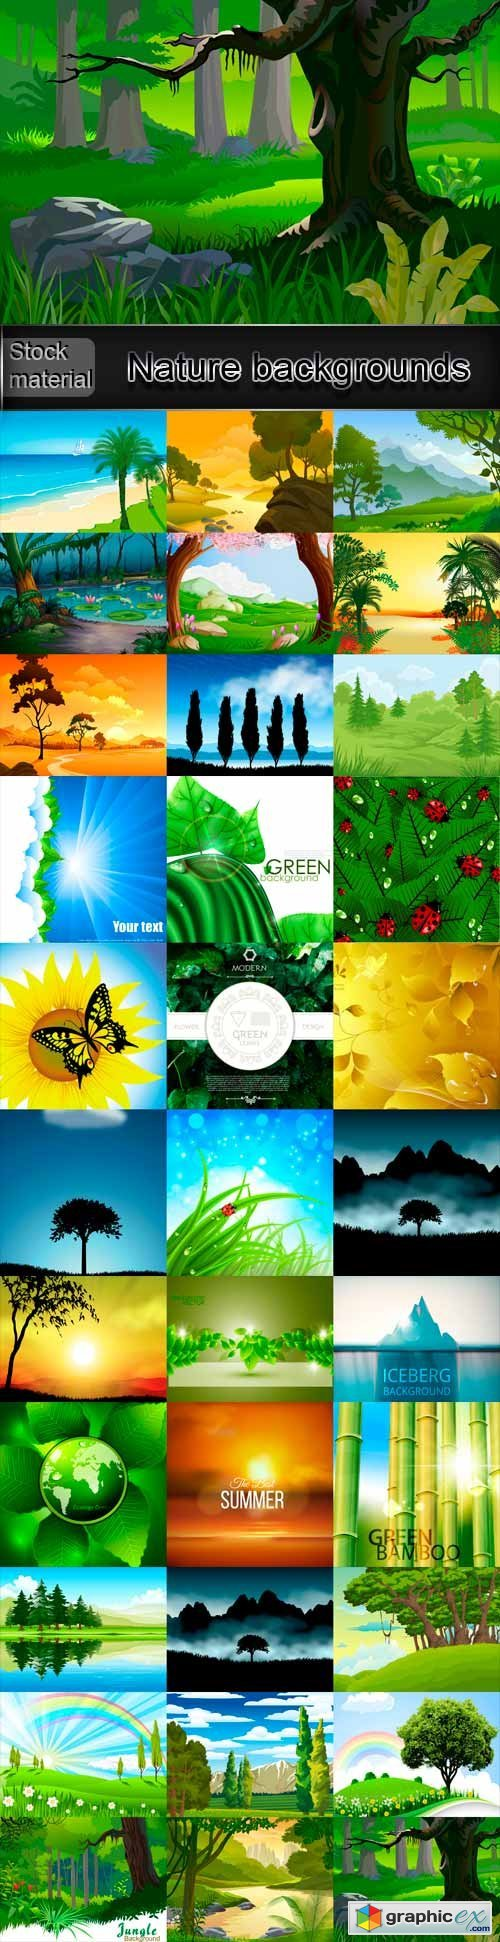 Nature vector backgrounds stock